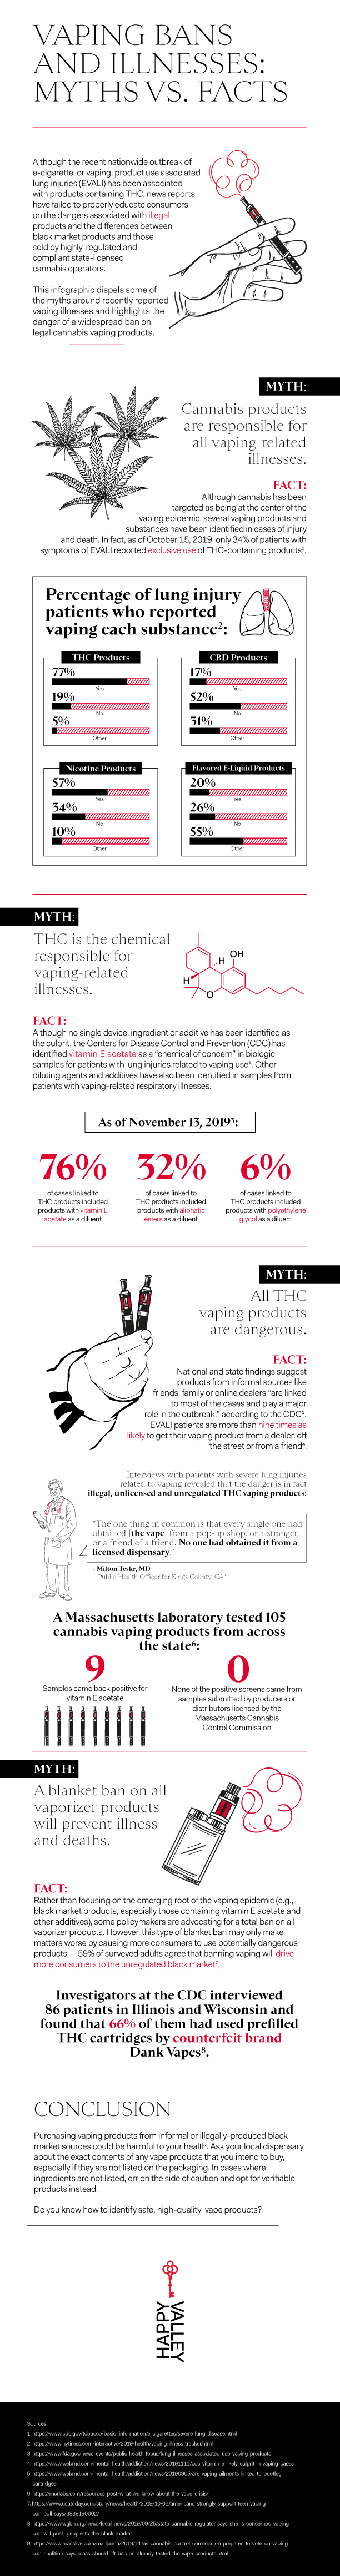 facts about vape bans and illnesses infographic